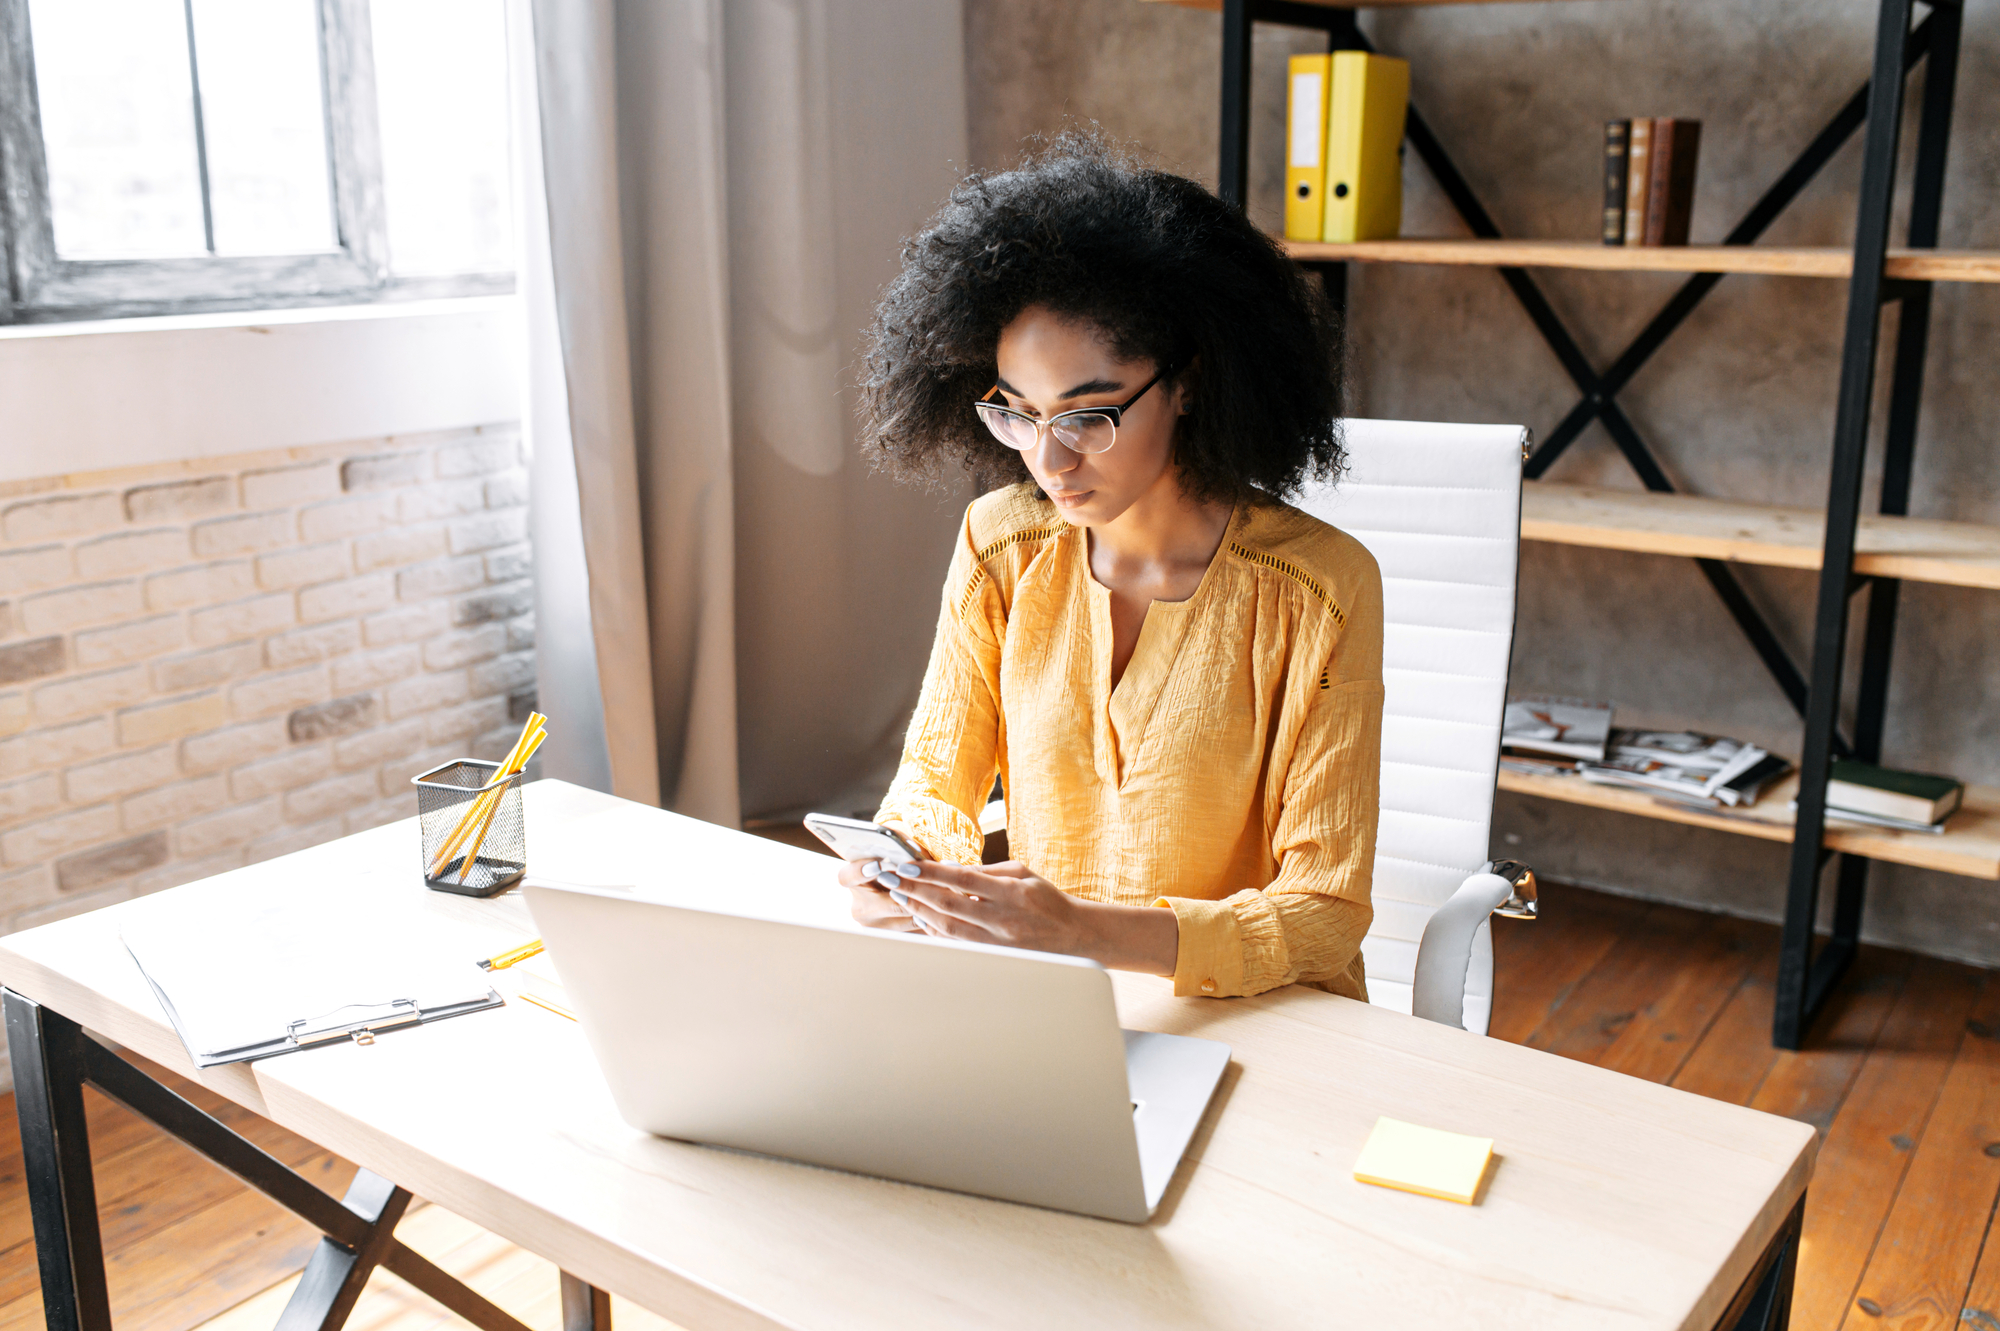 Attractive african american business woman is using mobile phone while sitting at the desk with laptop in a modern office